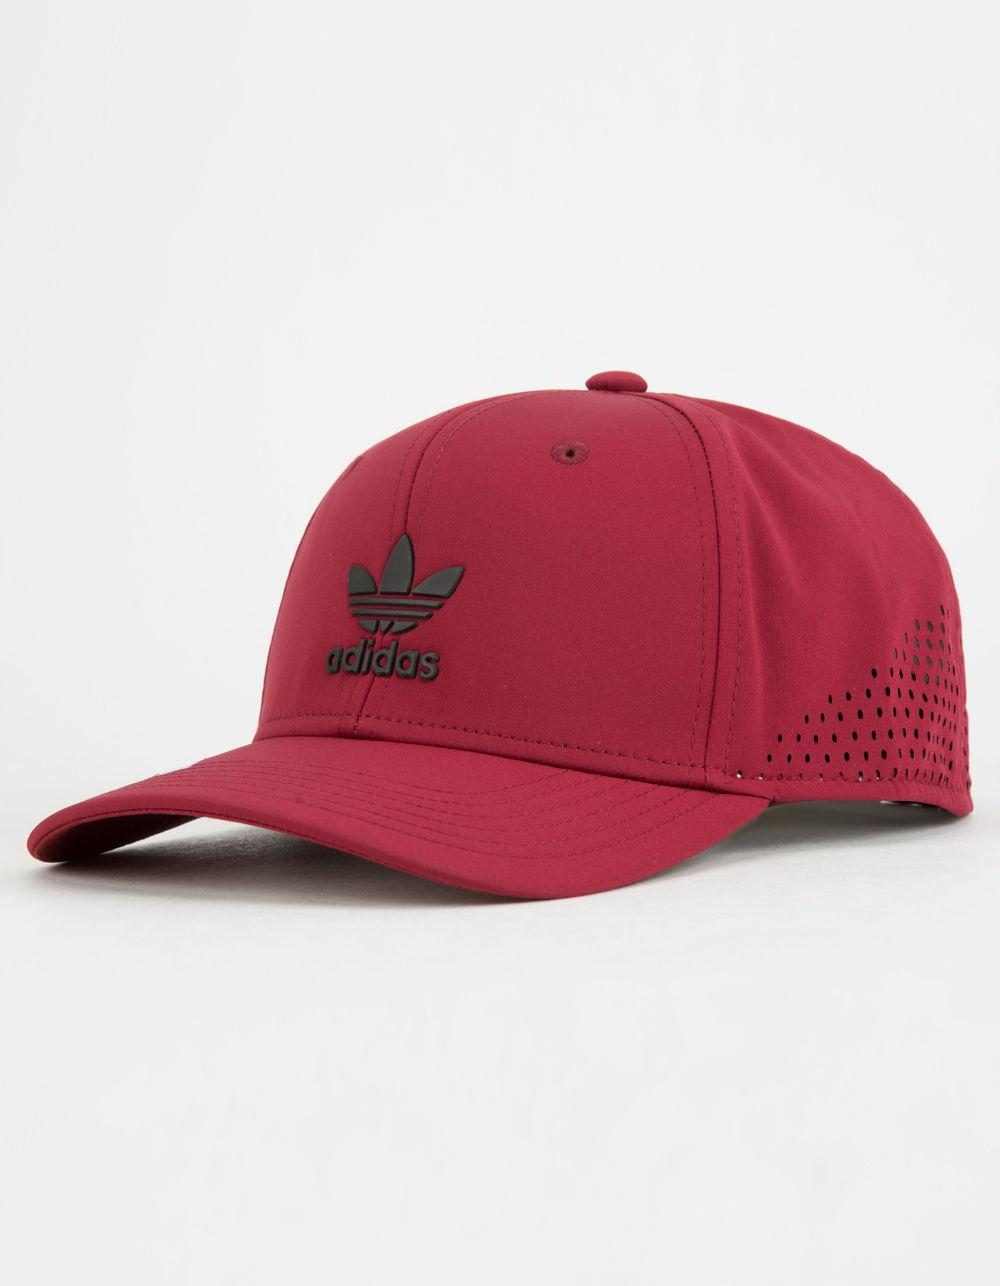 Lyst - adidas Originals Tech Mesh Burgundy Mens Snapback Hat in Red ... ab1a825677ed